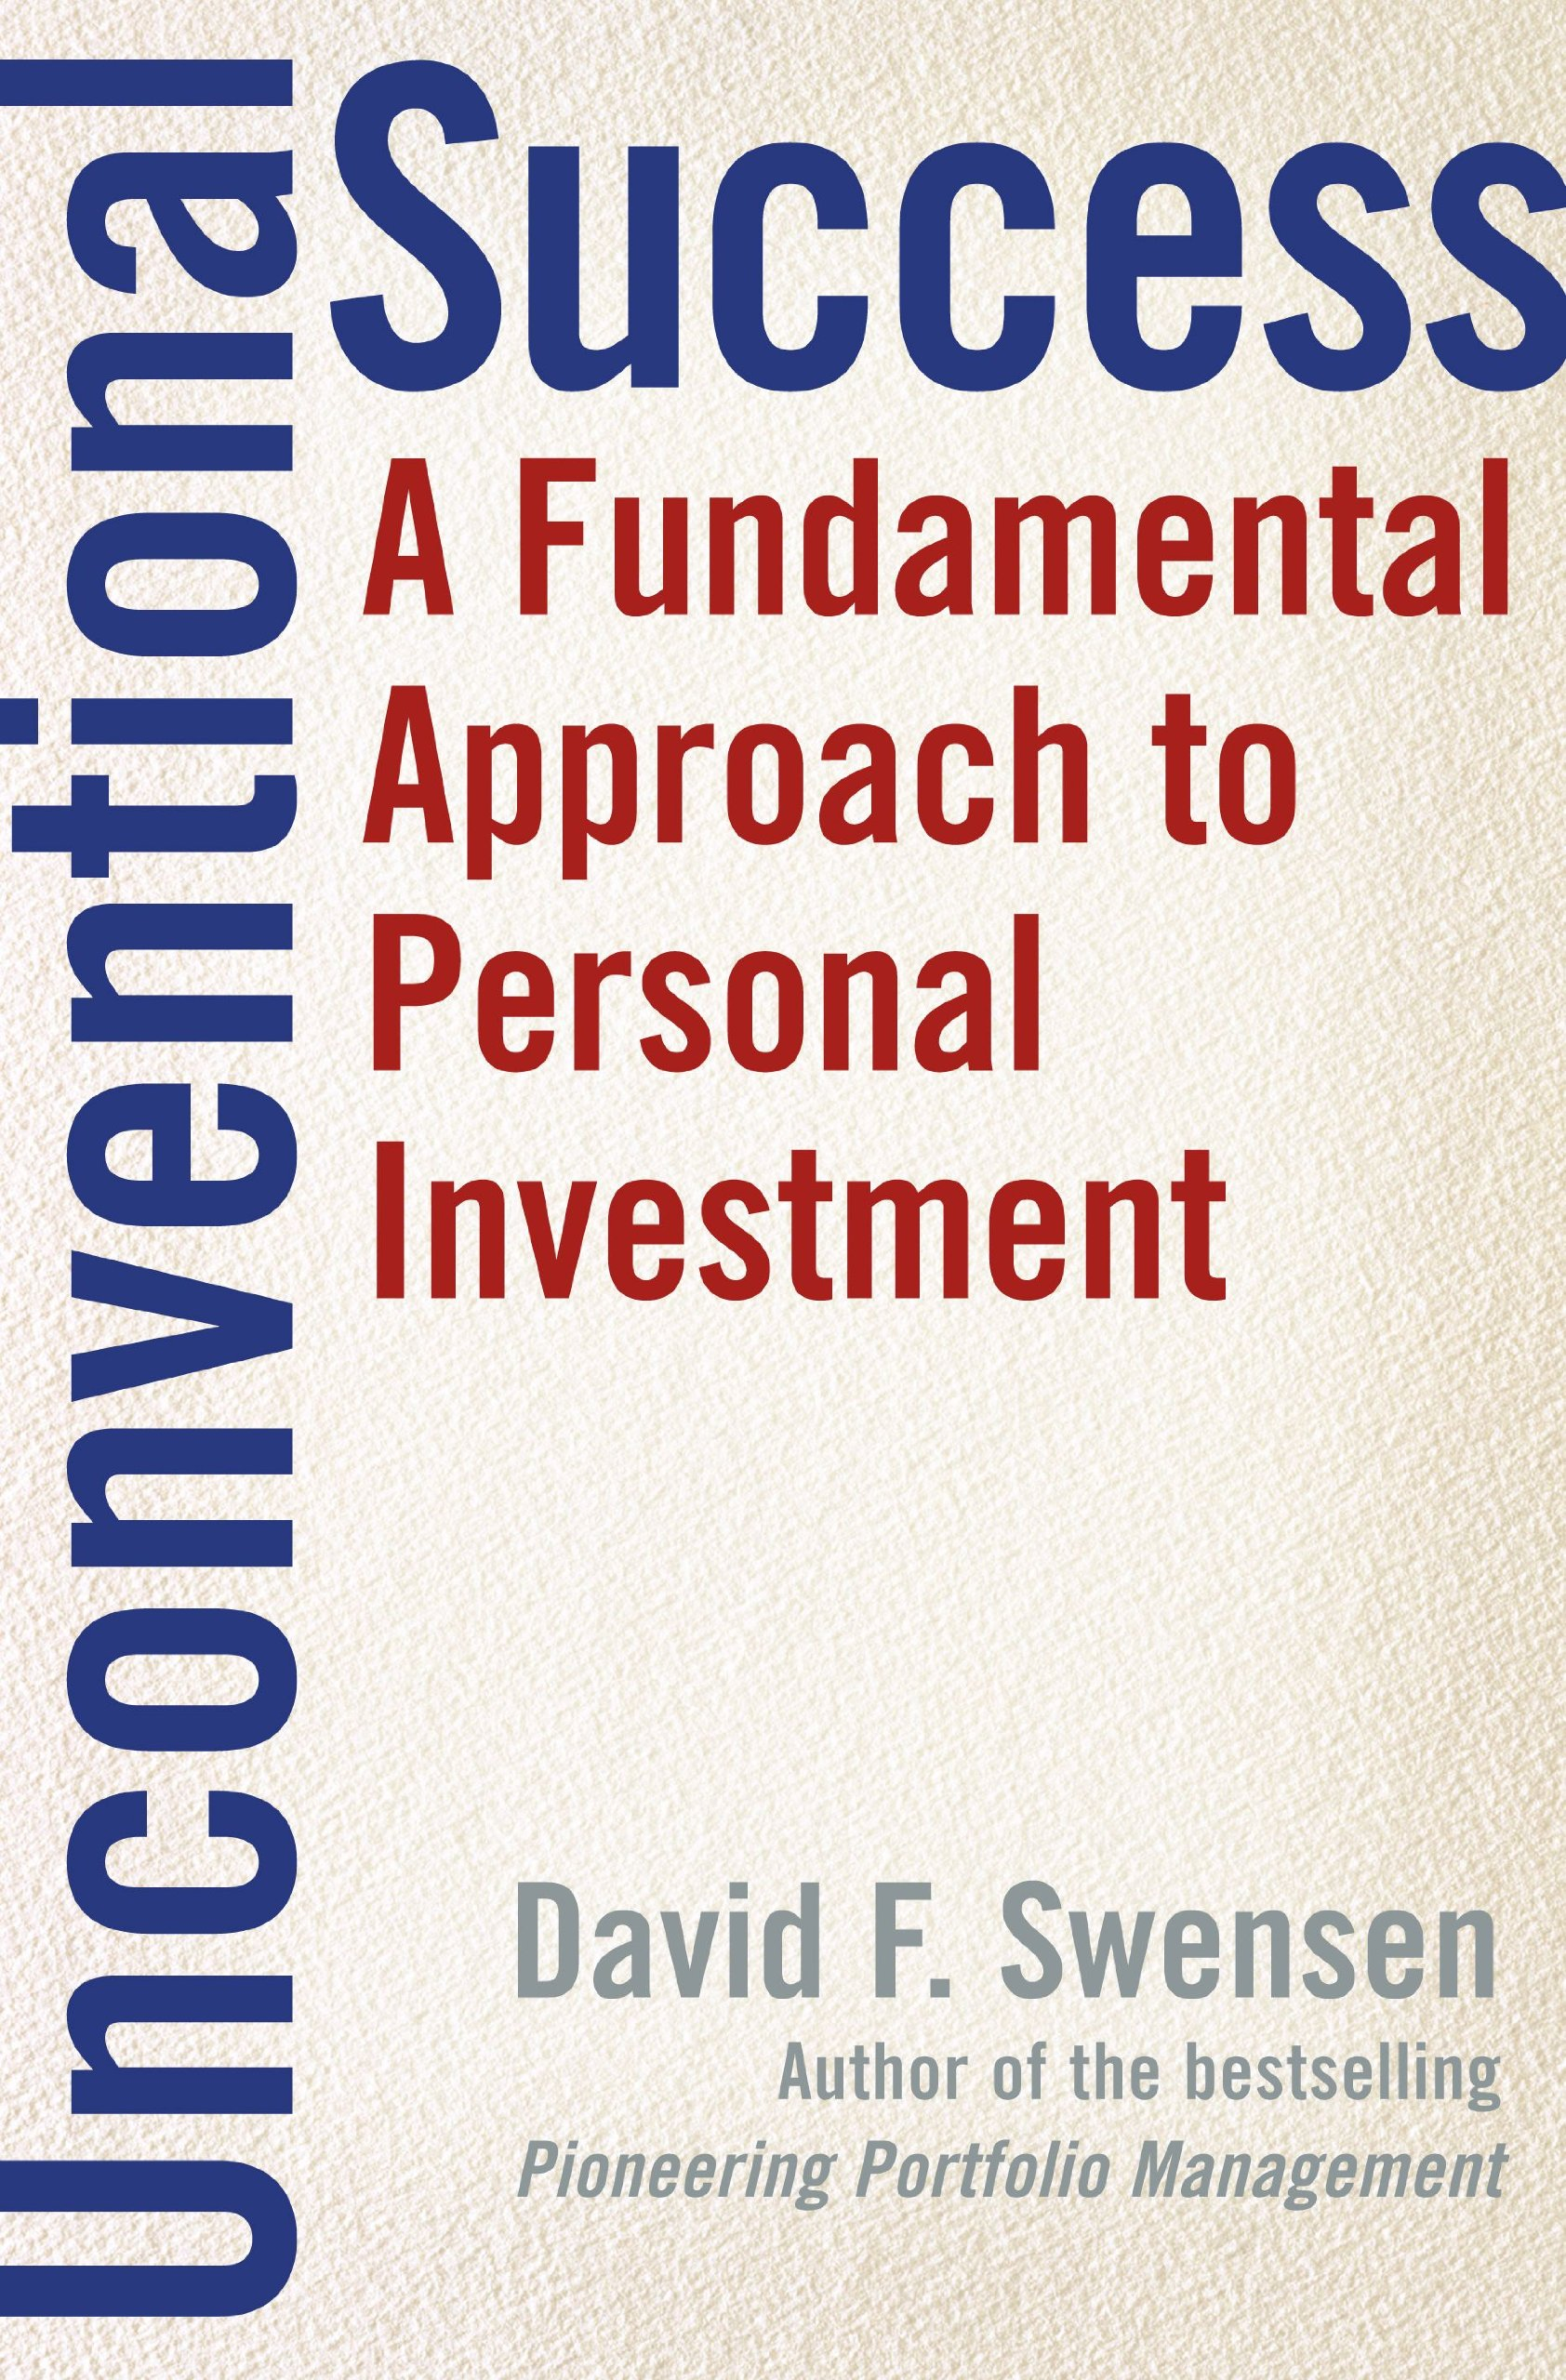 Unconventional Success: A Fundamental Approach to Personal Investment: Swensen, David F.: 9780743228381: Amazon.com: Books